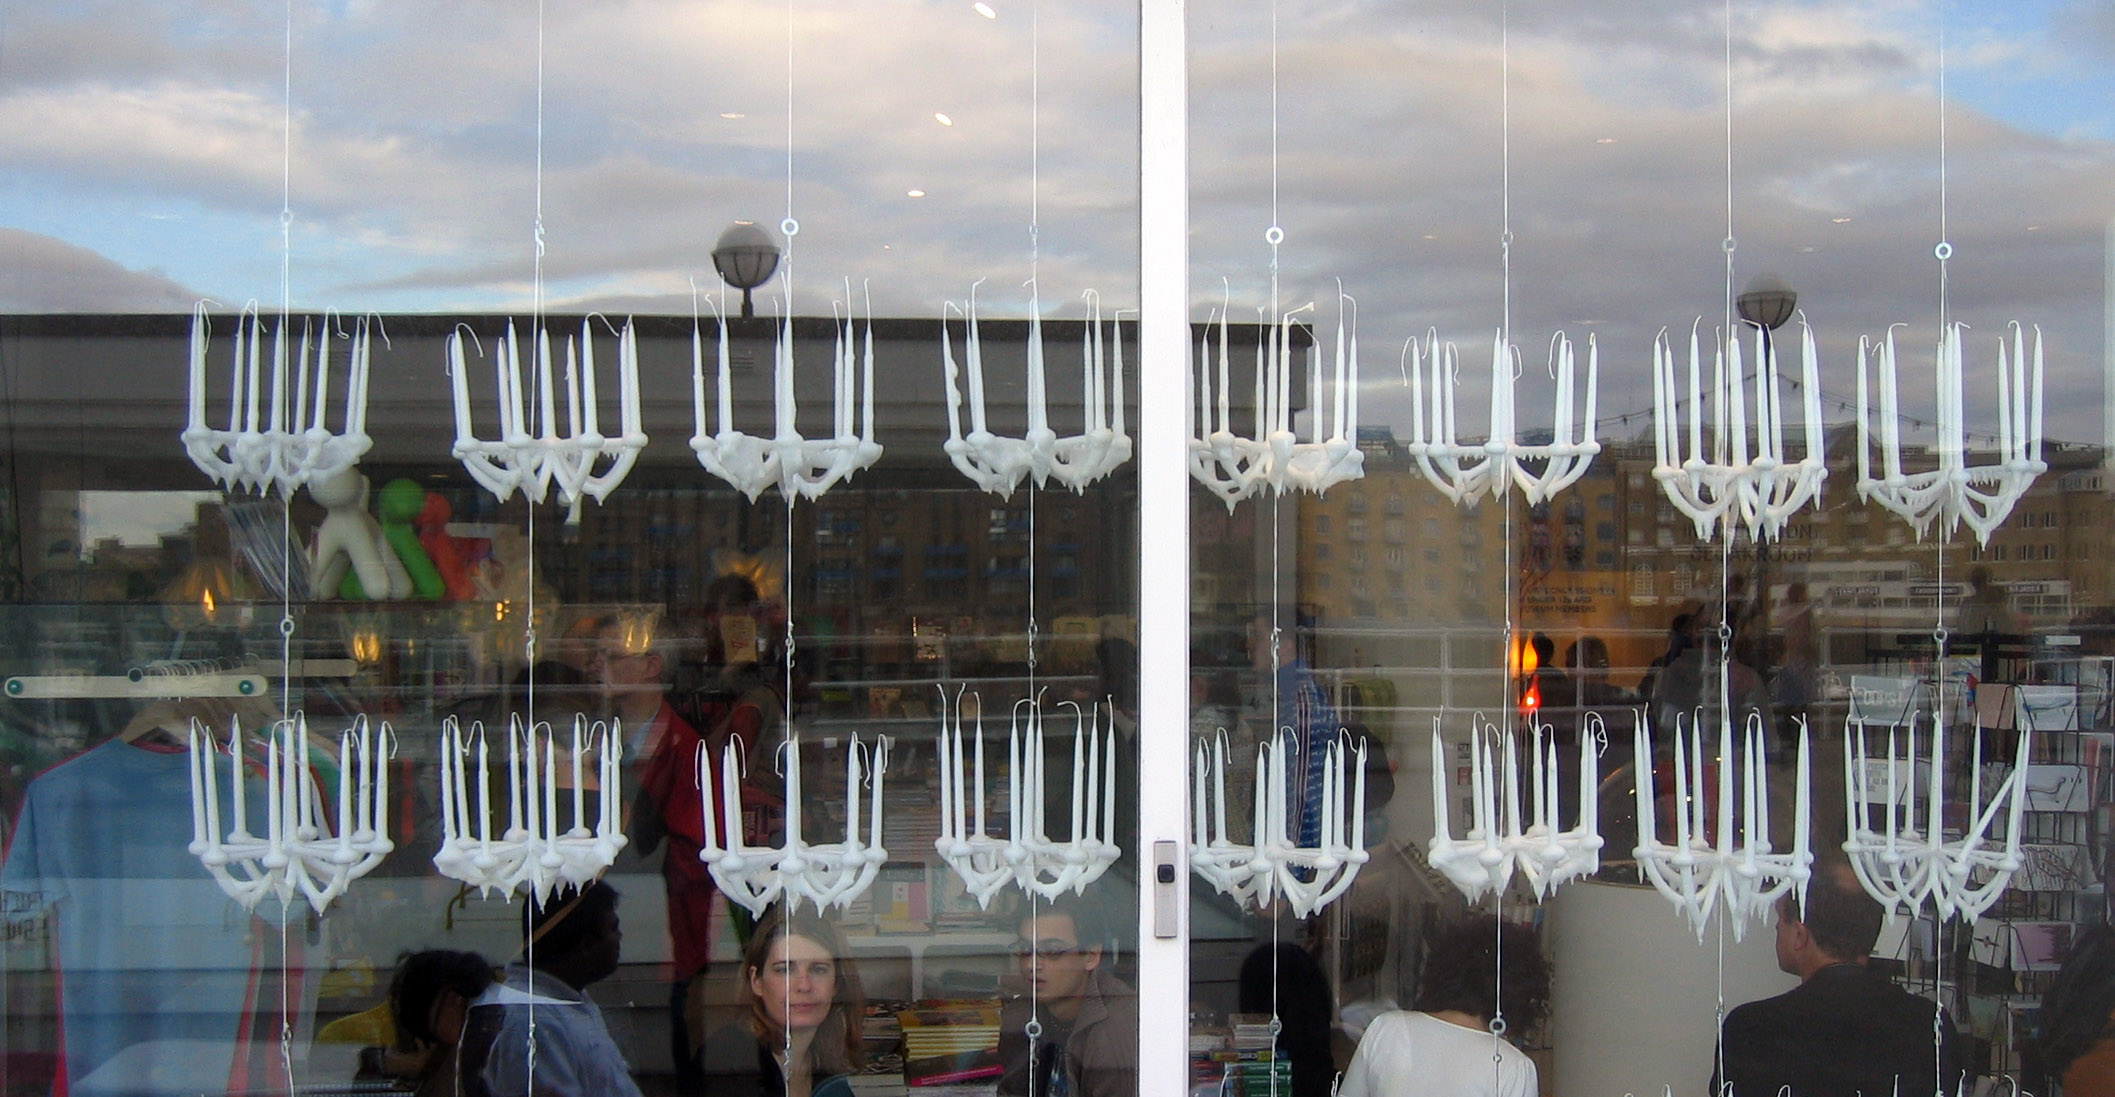 A harvest of chandeliers displayed in the window of the London Design Museum